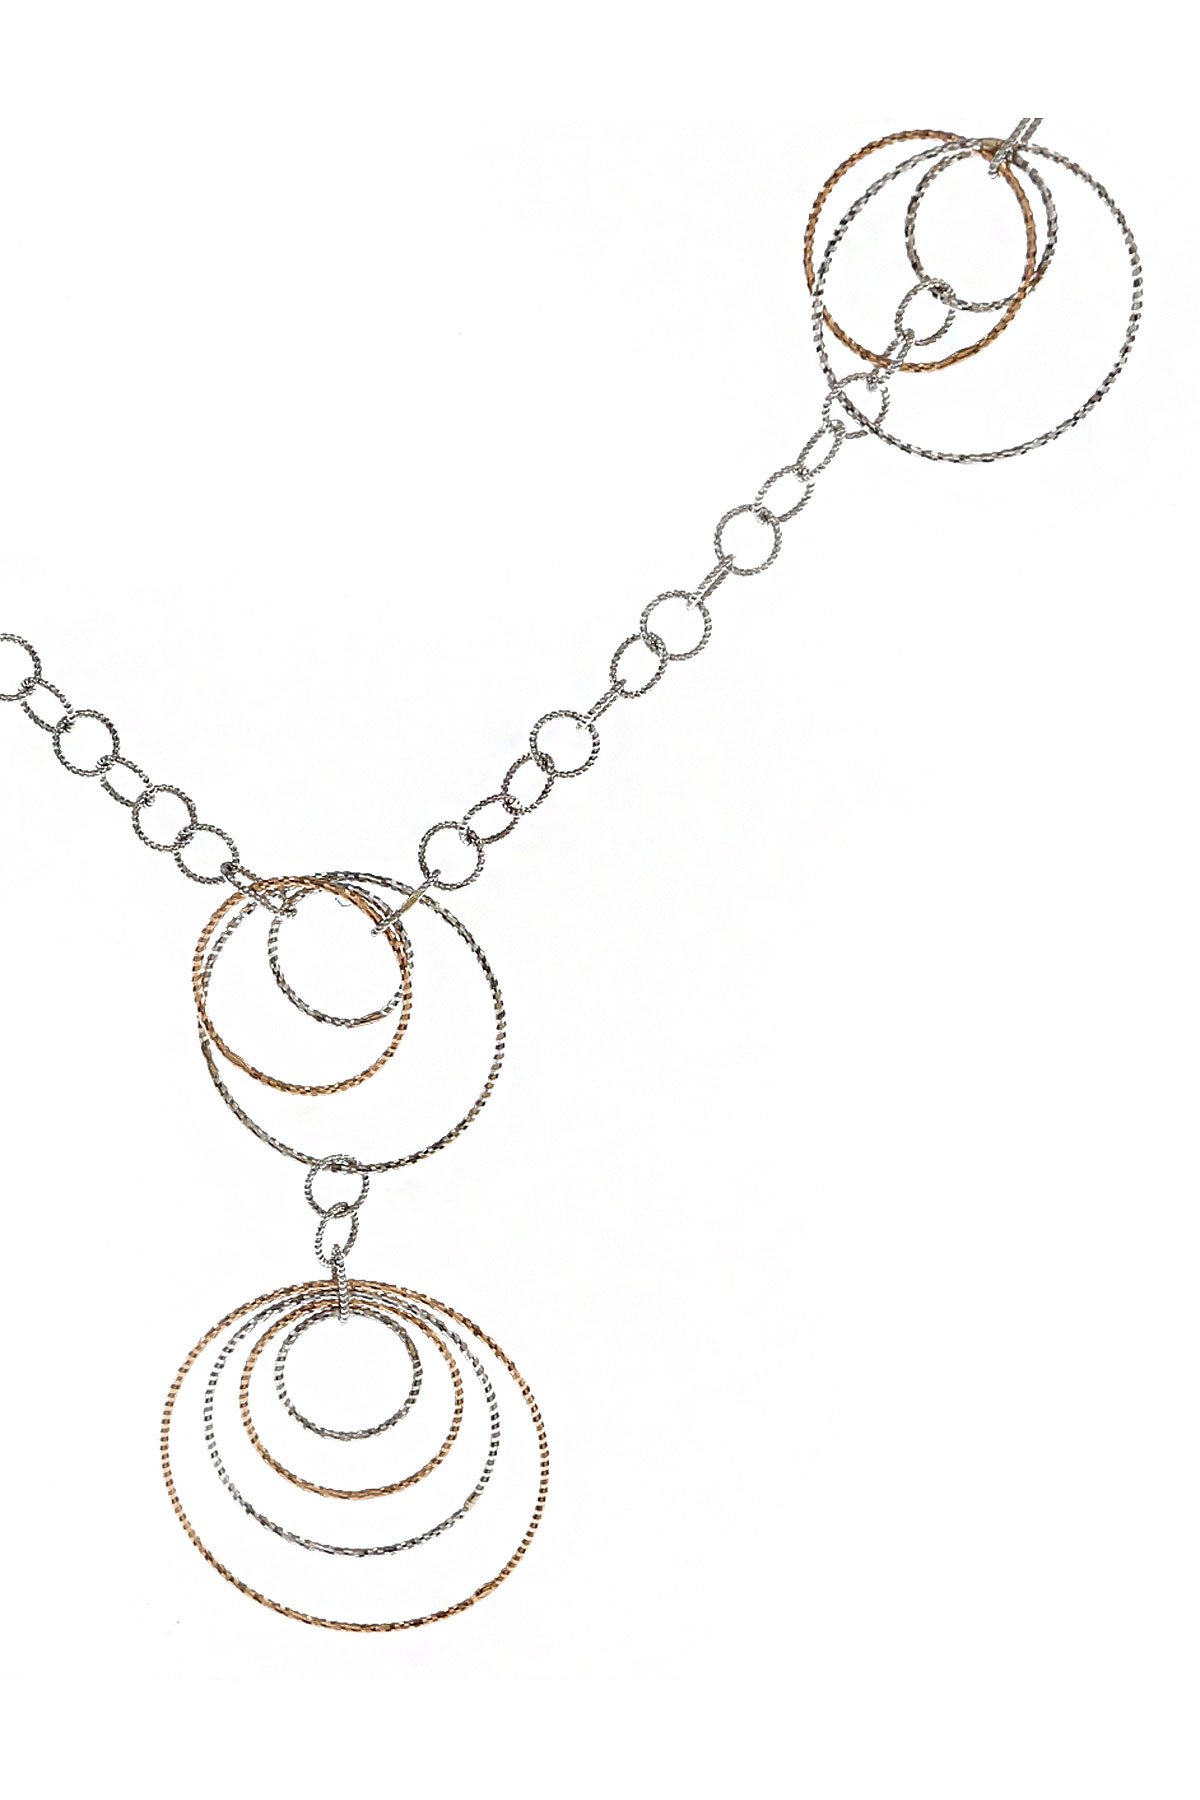 Italian Finest Jewelry Necklaces On Sale, White Gold, 18 Kt Rose Gold, 2019